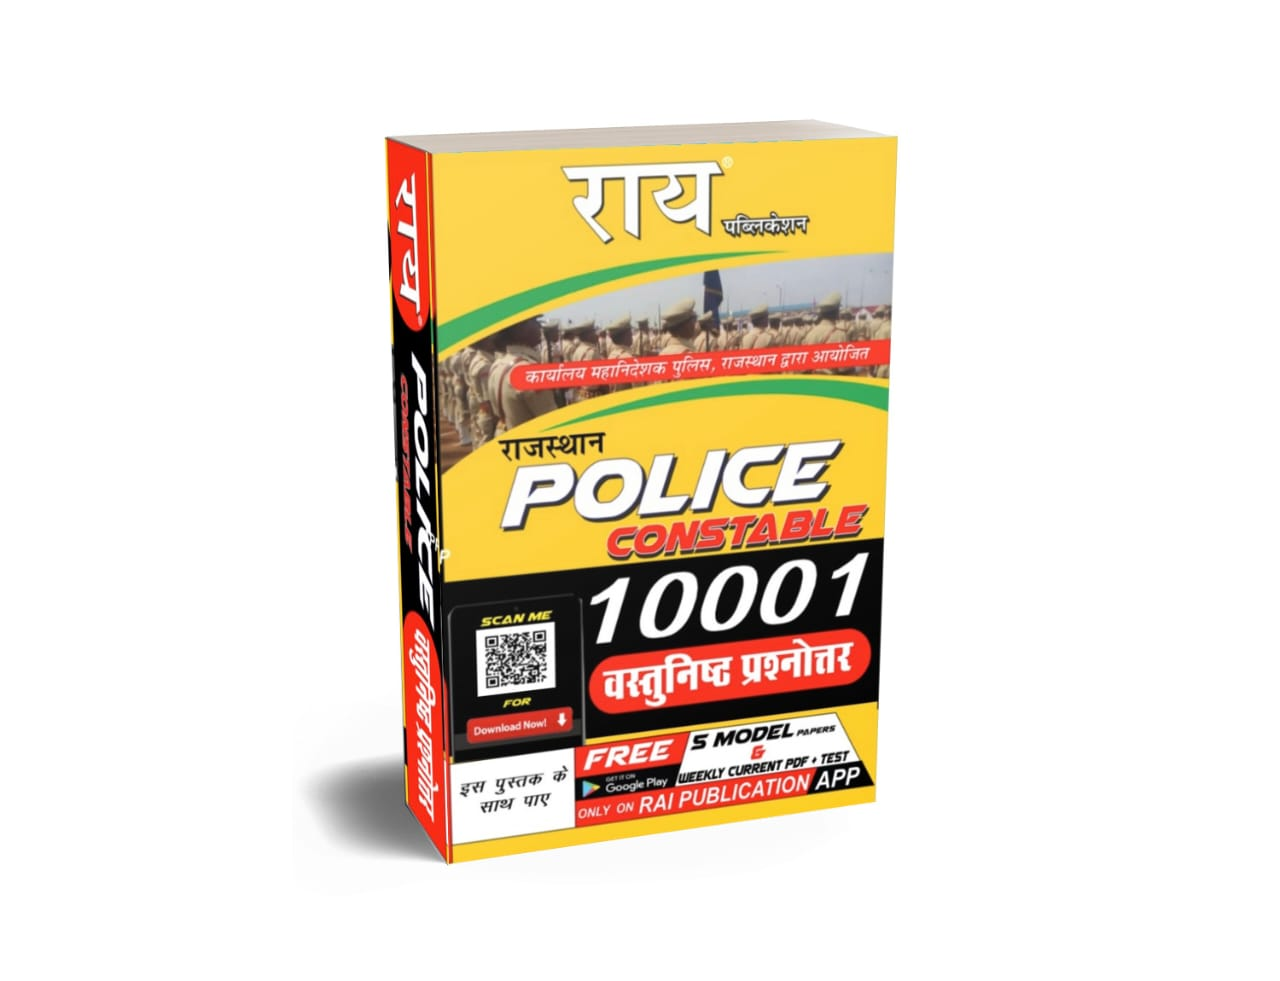 Rajasthan police constable 10001 Objective Q & A with free 5 Mock Test papers